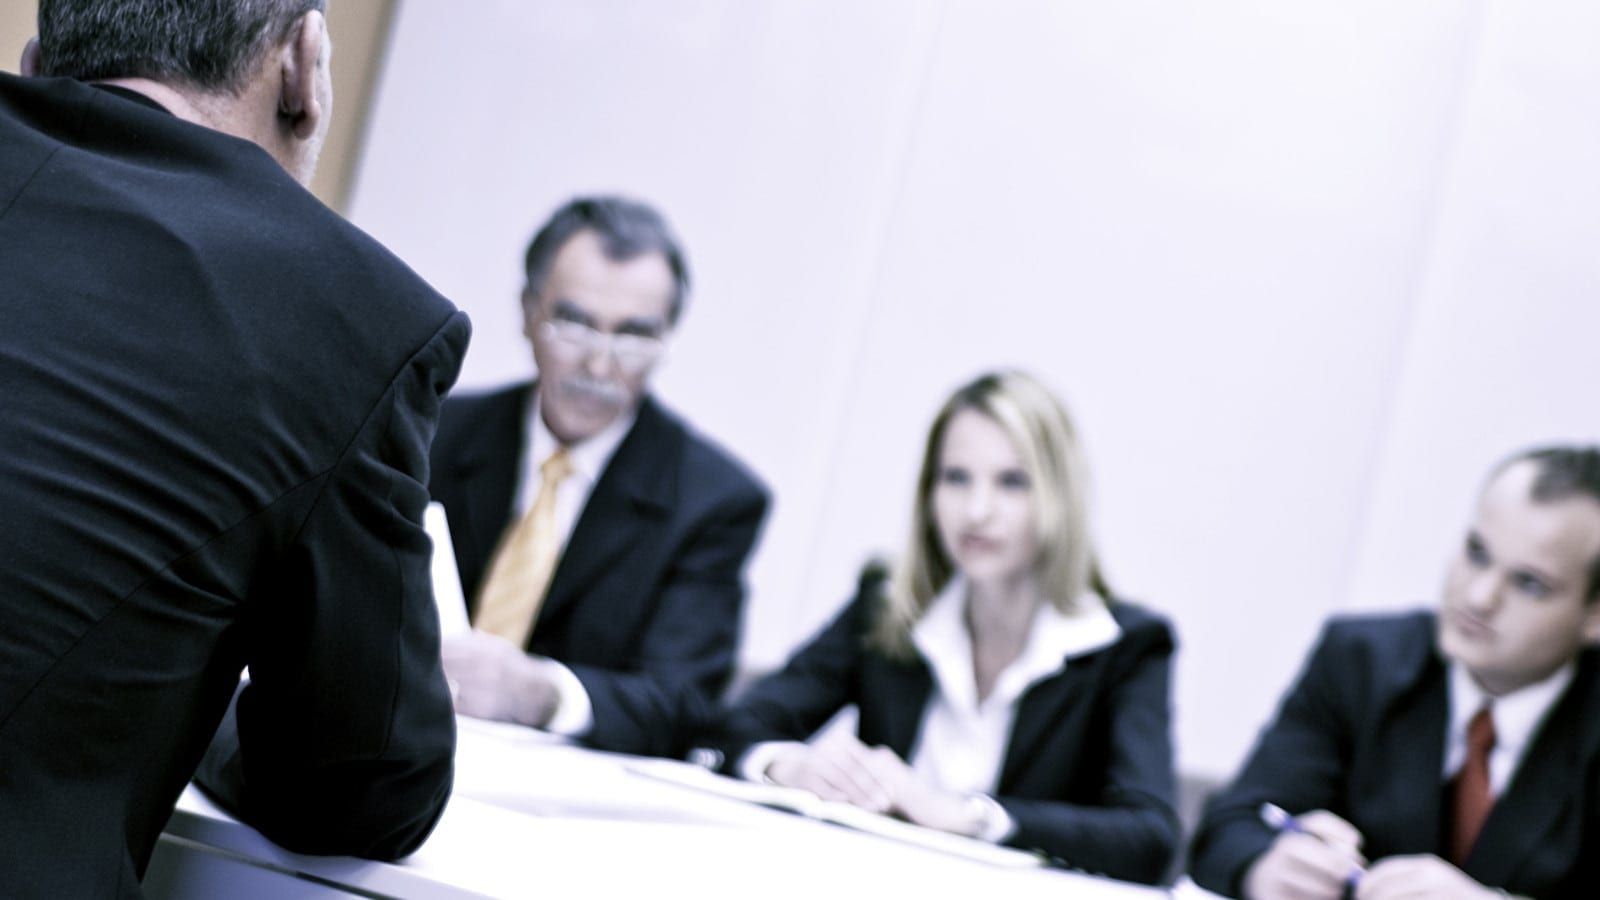 Personal injury lawyer mediating a claim at a meeting.